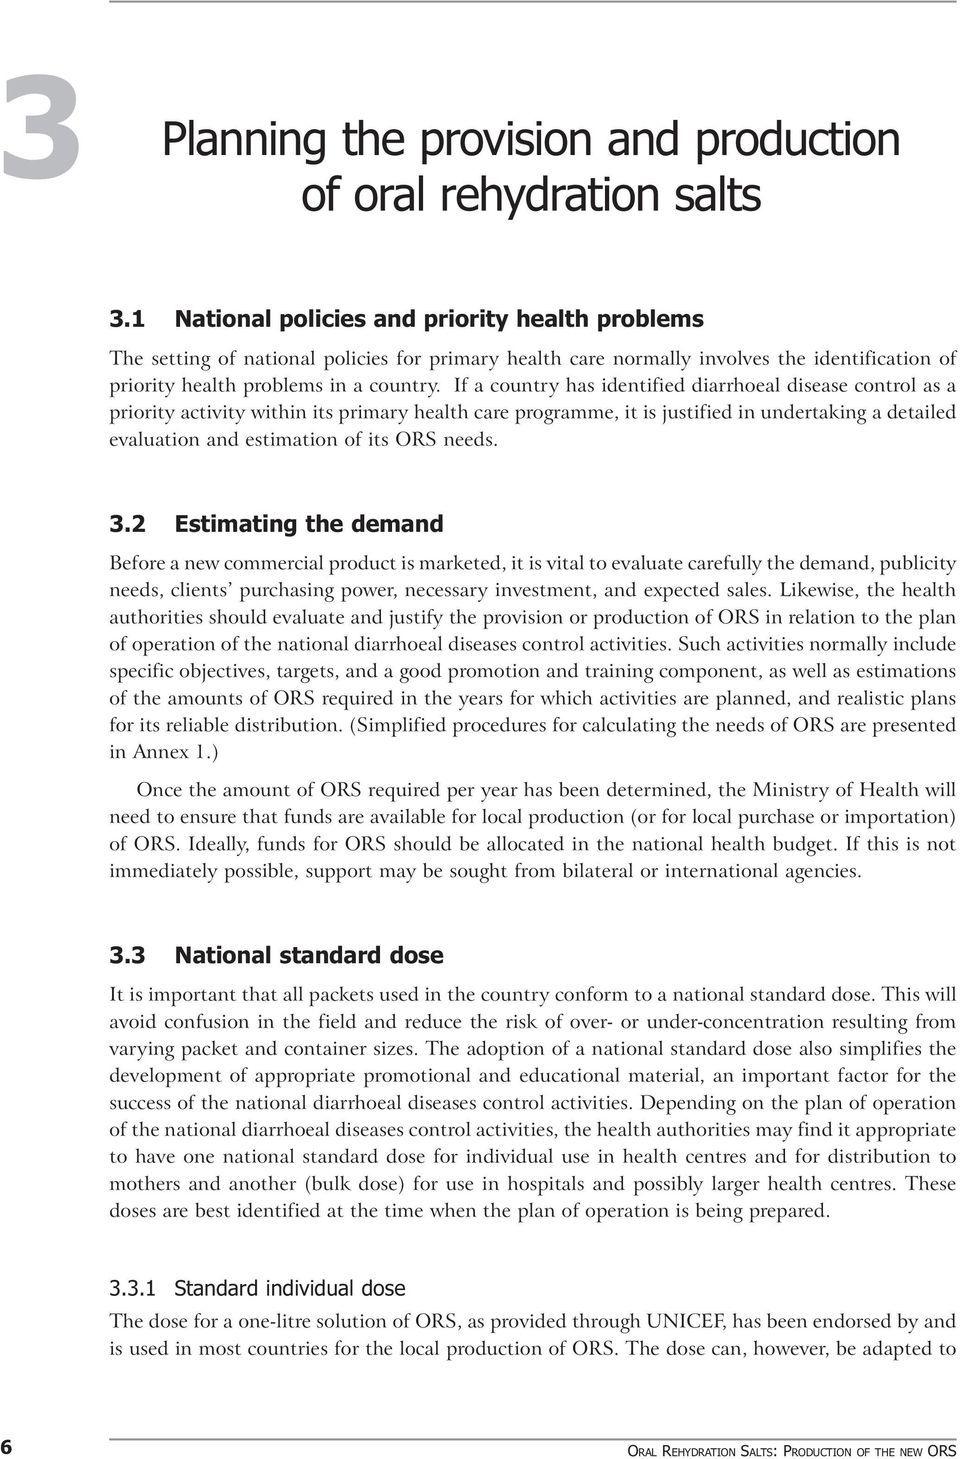 If a country has identified diarrhoeal disease control as a priority activity within its primary health care programme, it is justified in undertaking a detailed evaluation and estimation of its ORS